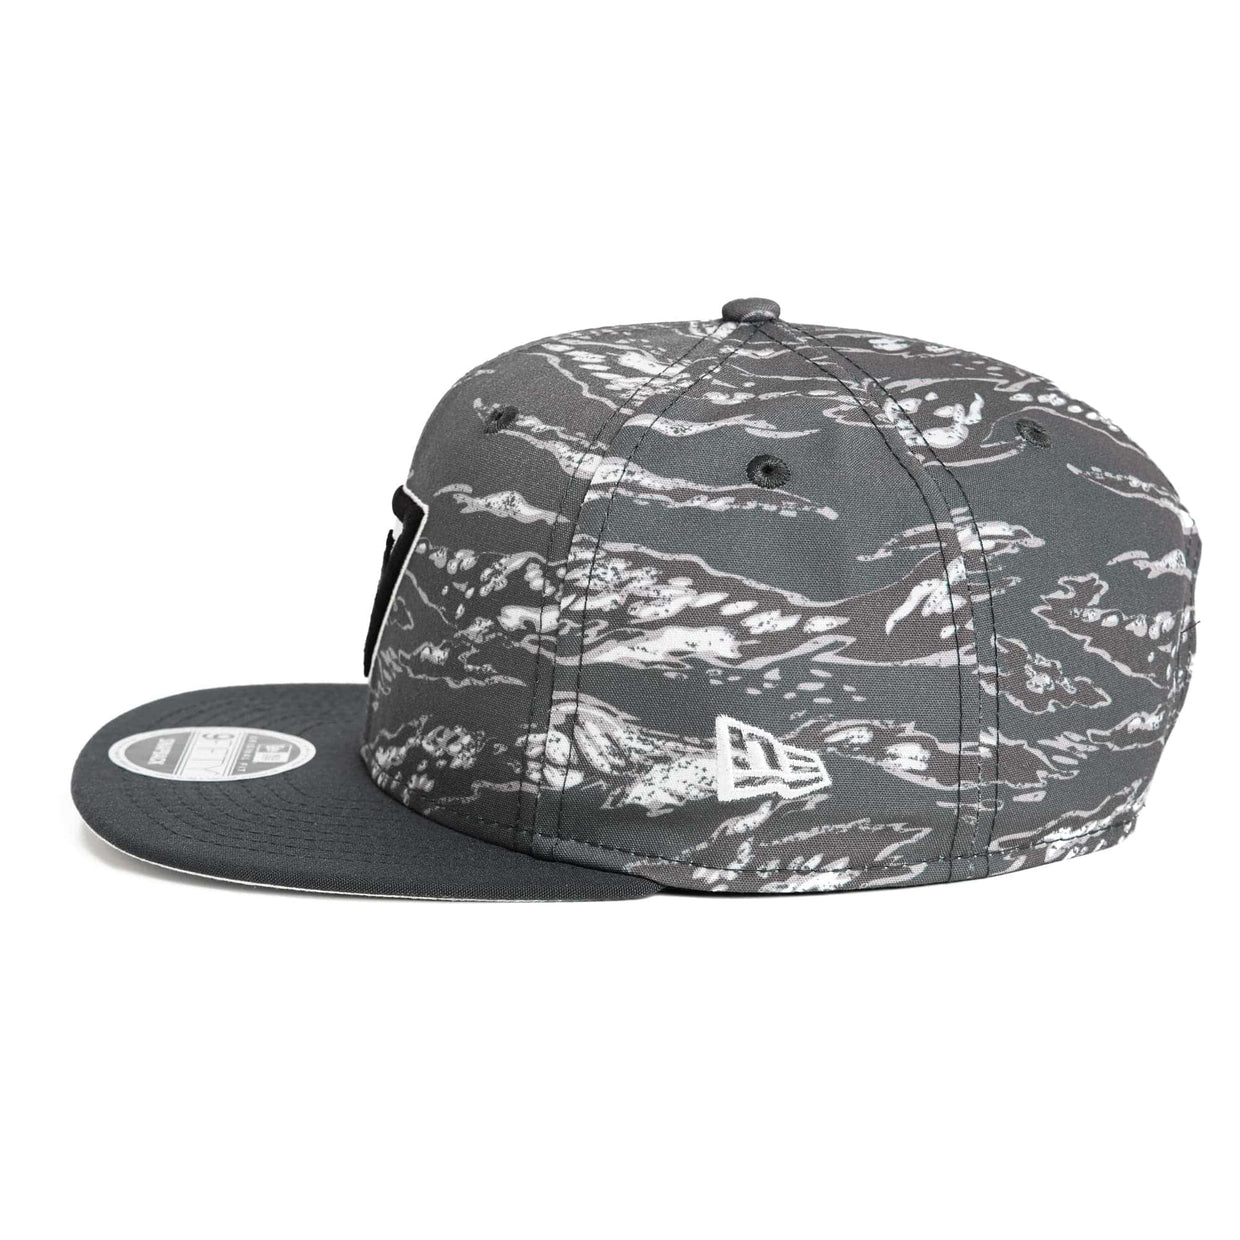 Typical x New Era 9Fifty Original Fit 'Tiger Camo' Snapback